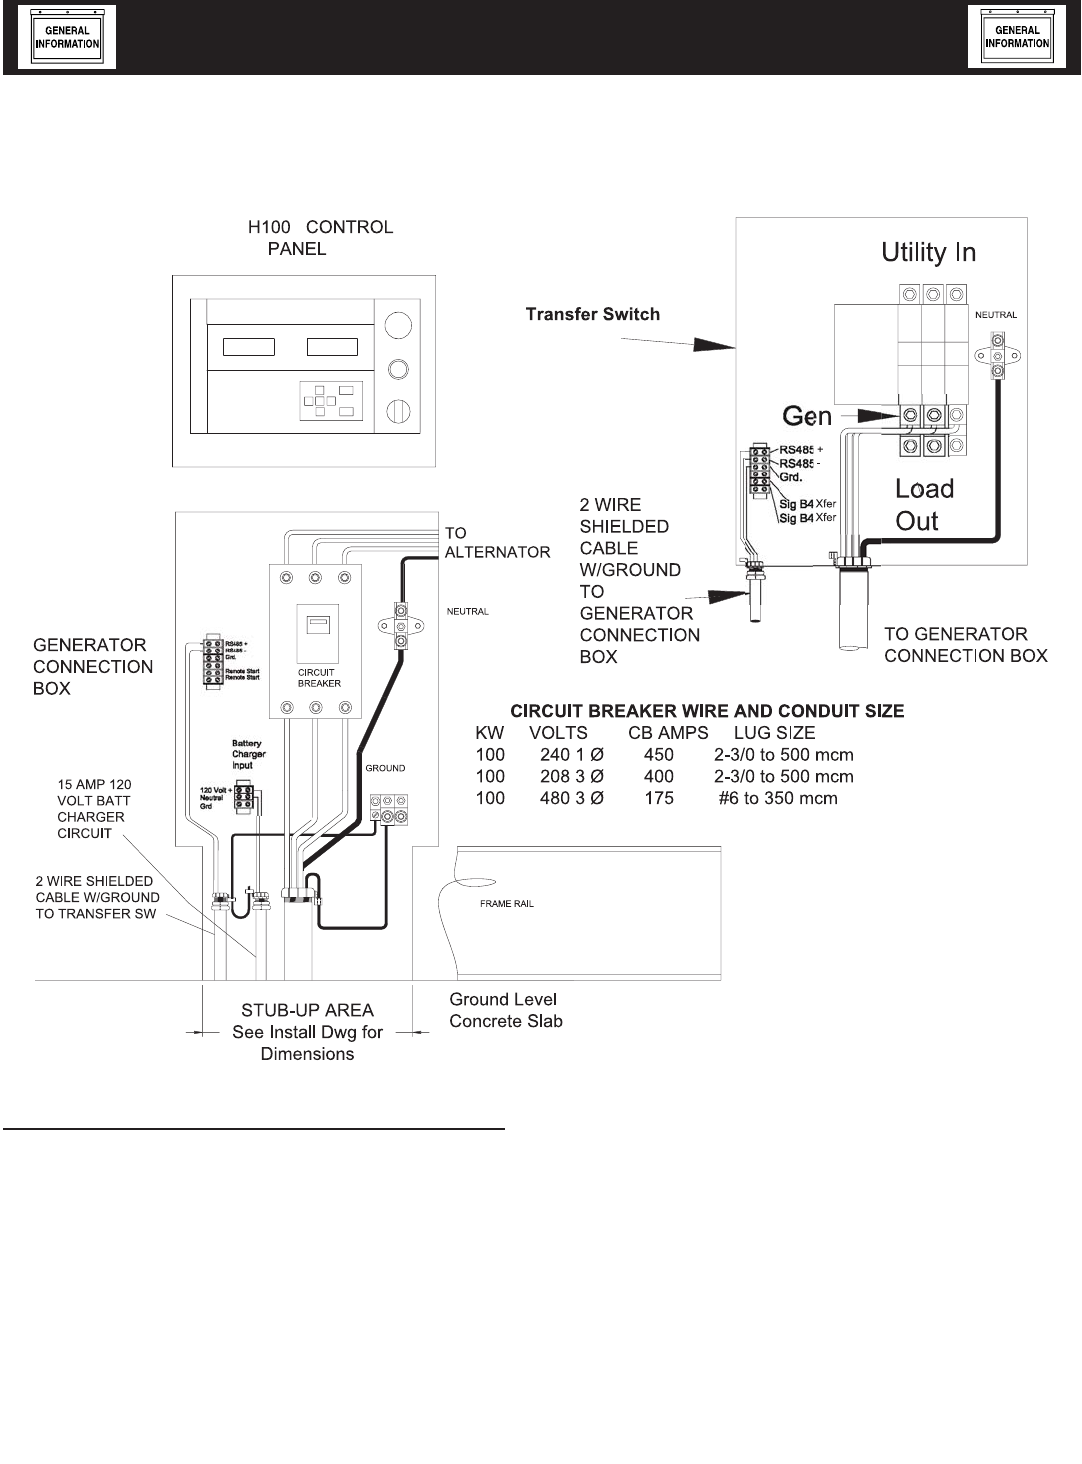 Glamorous mcm wiring diagram pictures best image diagram guigou wire size table mcm image collections wiring table and diagram greentooth Images